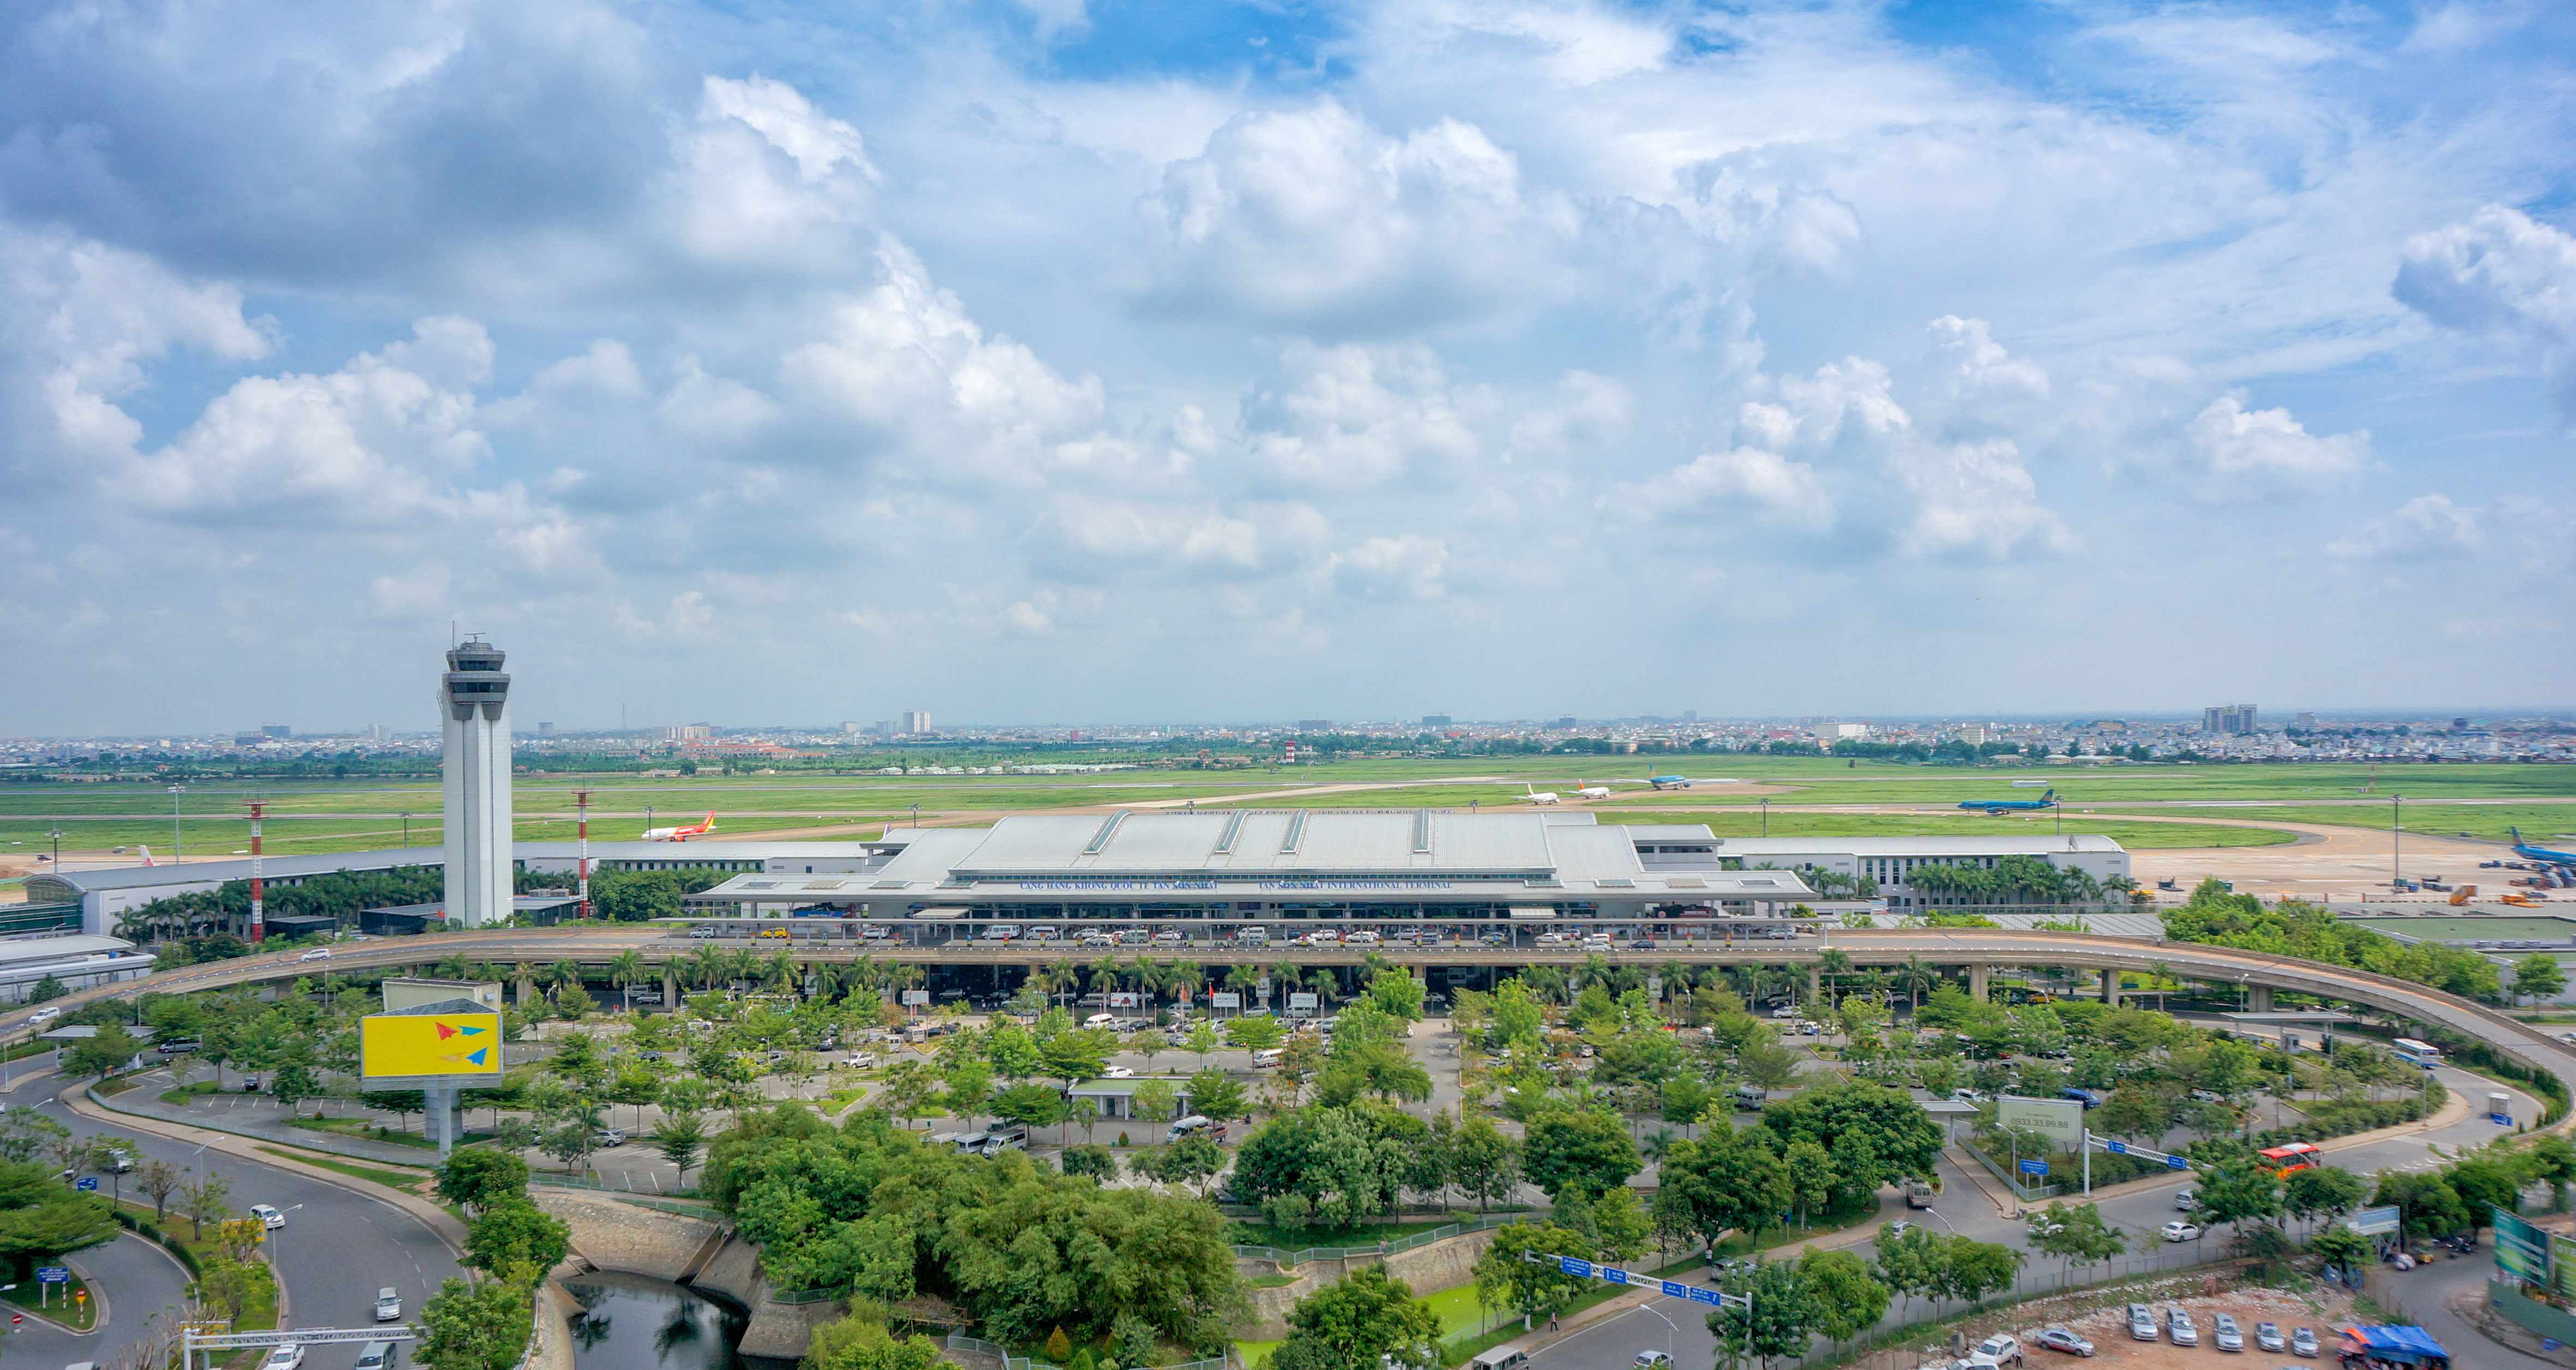 L'aéroport international de Tan Son Nhat